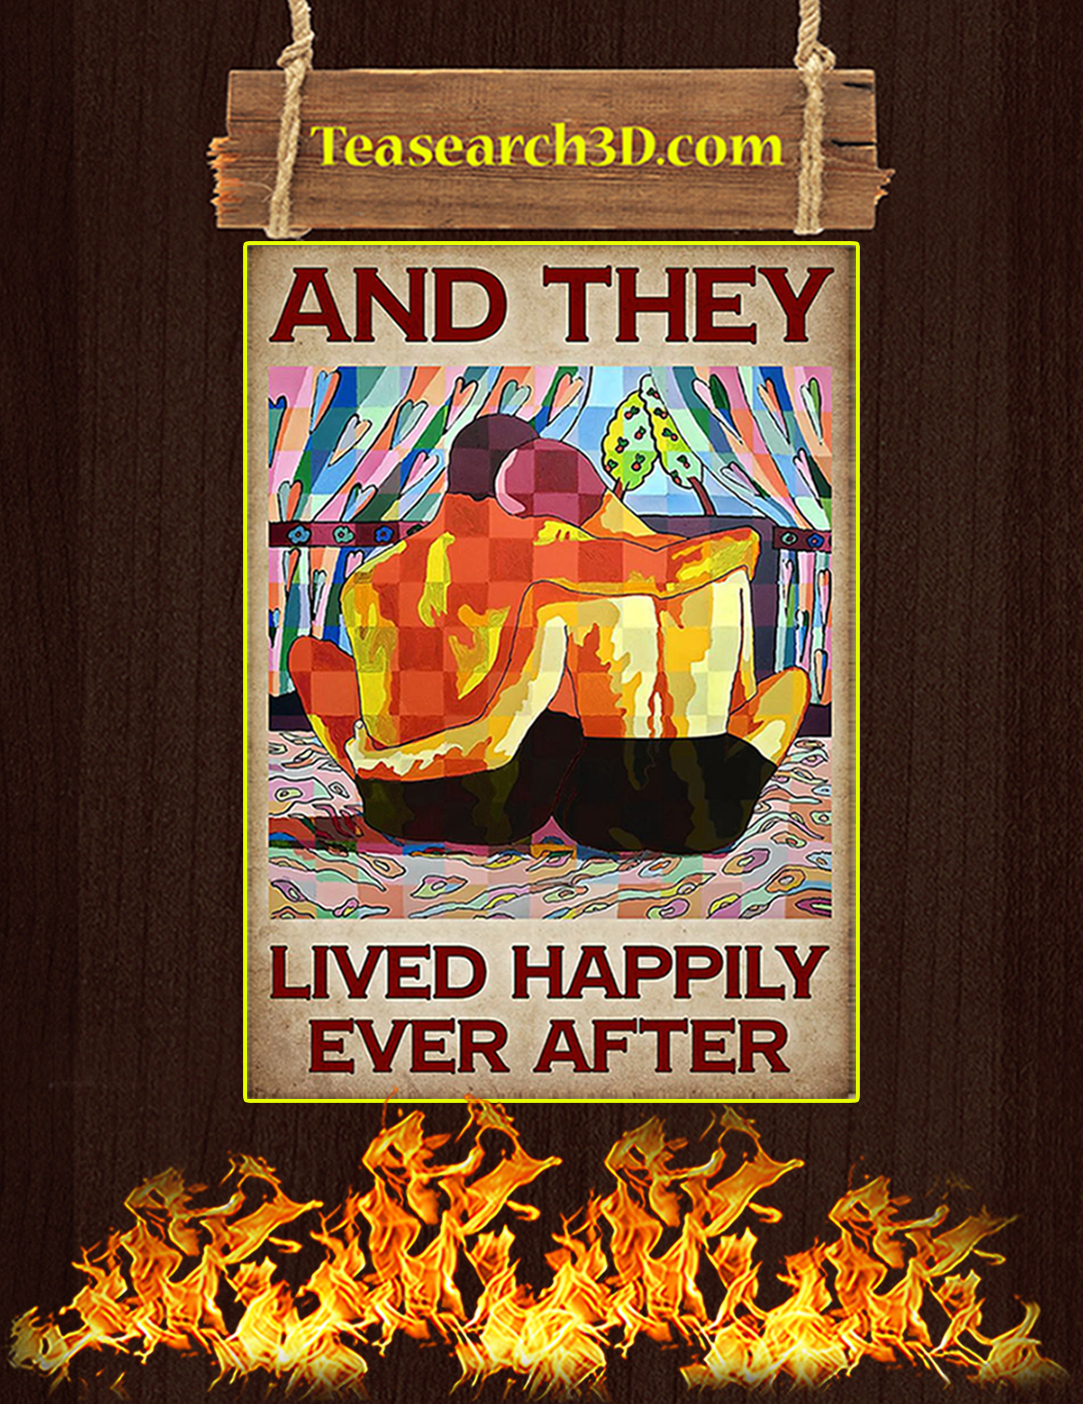 LGBT and they lived happily ever after poster A2